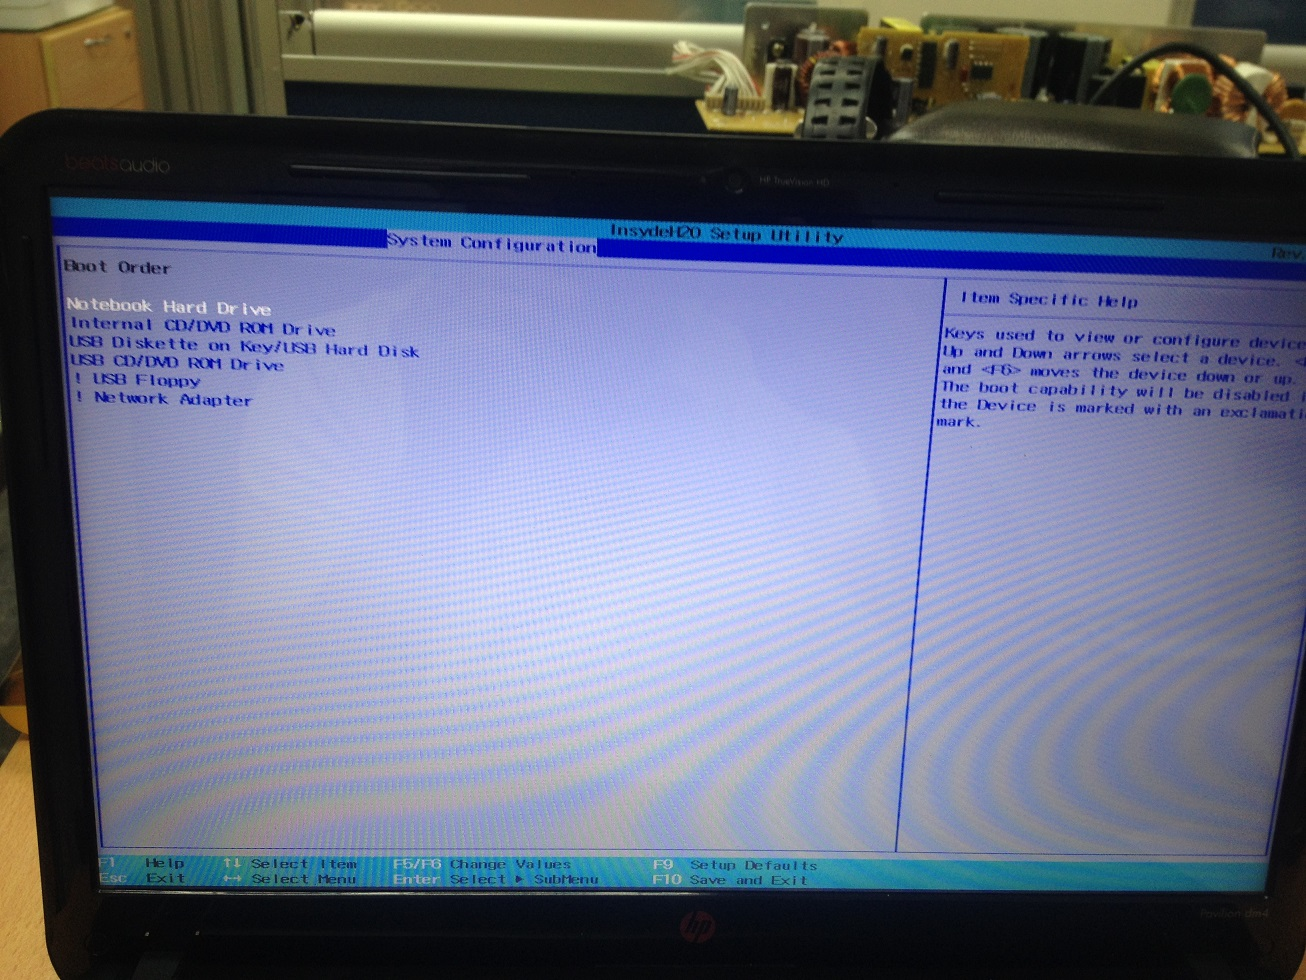 Pavilion Notebook M4Y35PA #UUF: cannot get into the Bios on HP